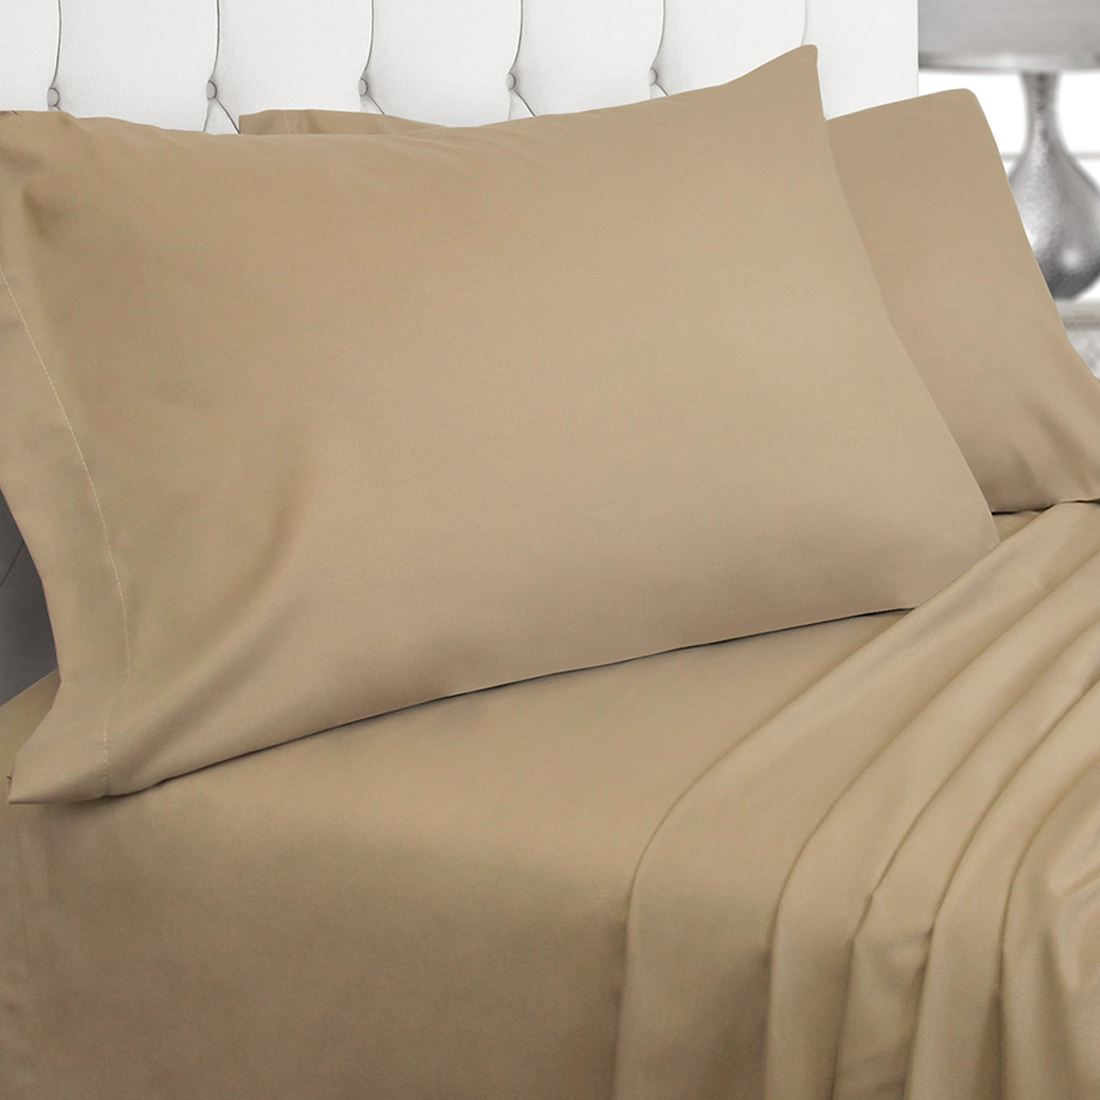 Luxury 200 thread count fitted sheet 100 egyptian cotton for High thread count bed sheets